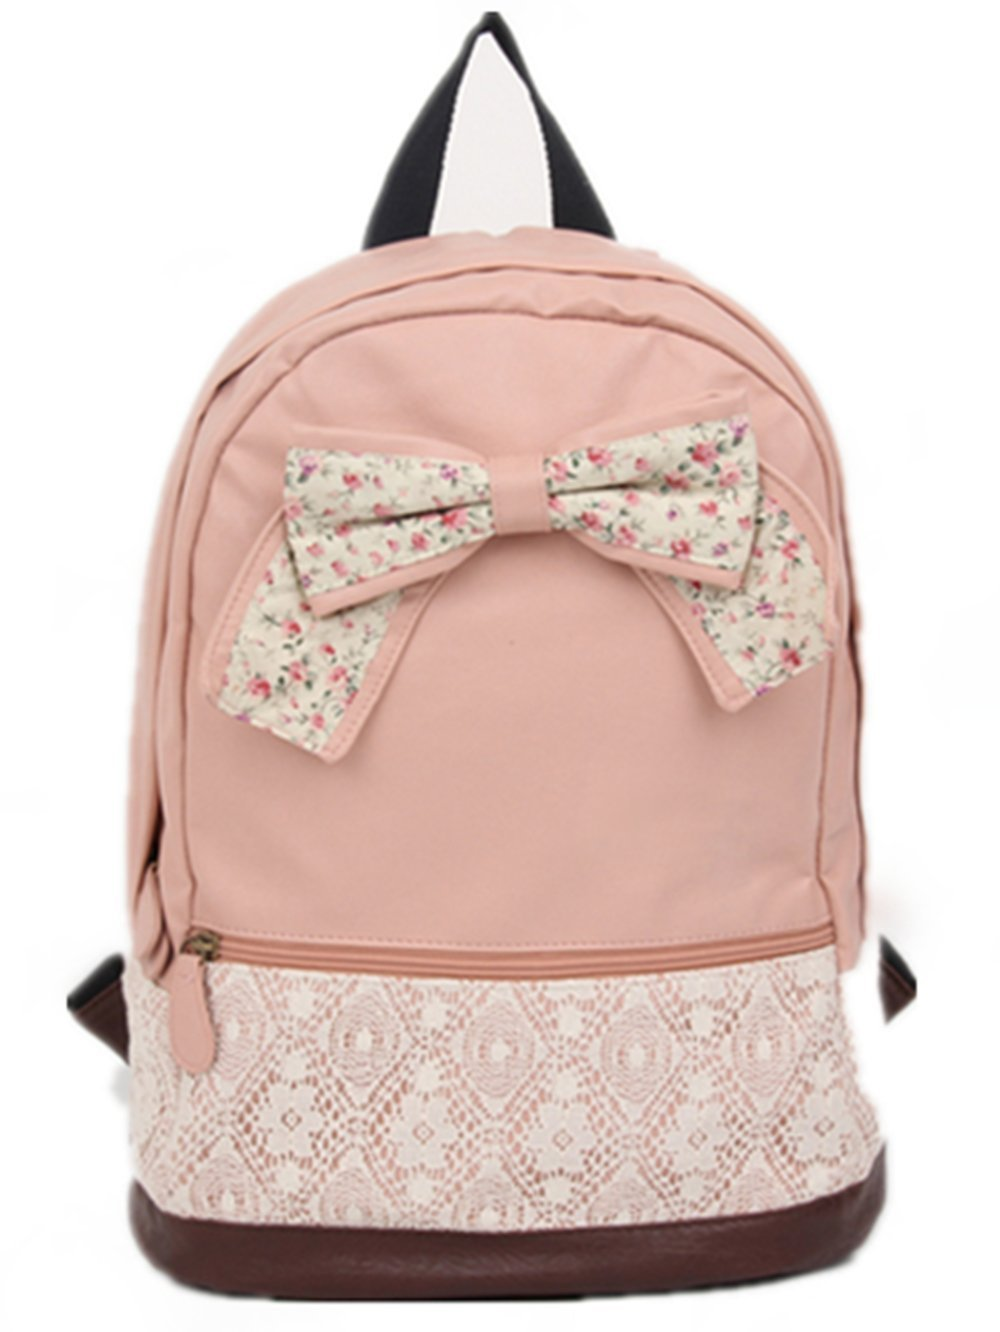 Cute Girly Backpacks ouL0Z8bQ